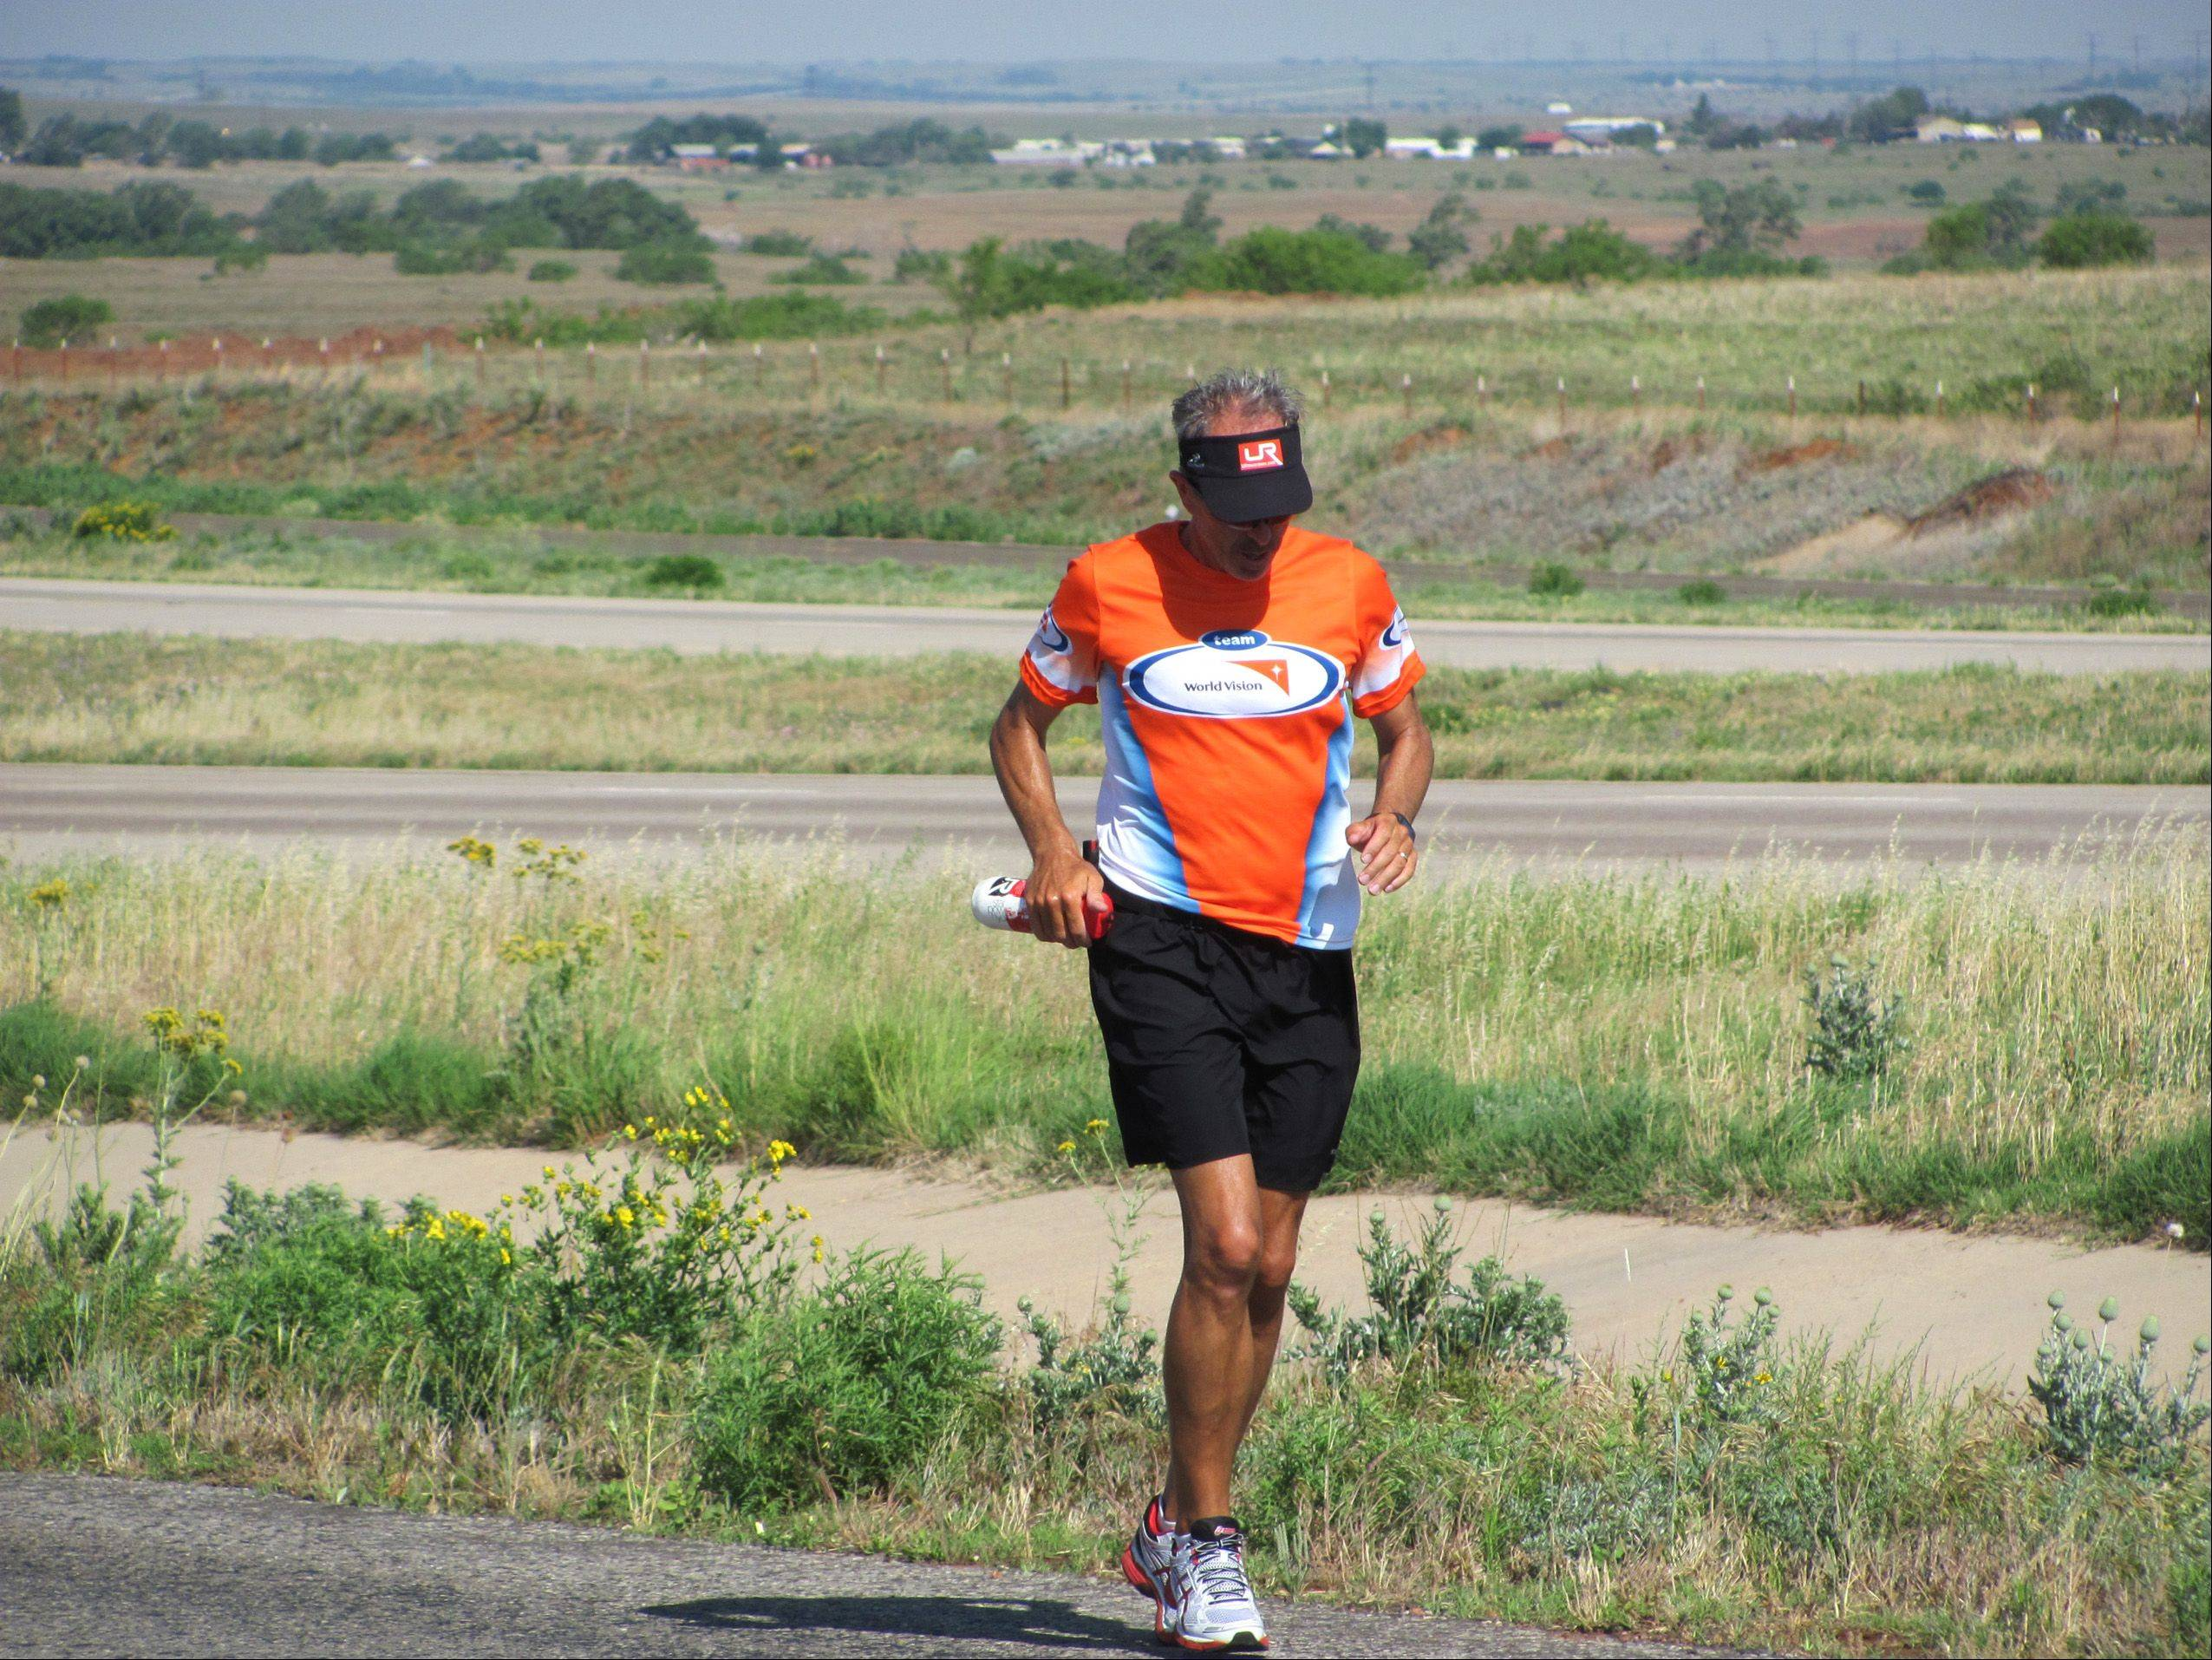 Steve Spear is running from Santa Monica, Calif., to New York to raise awareness and money to address the lack of clean water sources in Africa. If he raises $1.5 million, he will build a clean water system for 30,000 people in Kenya.